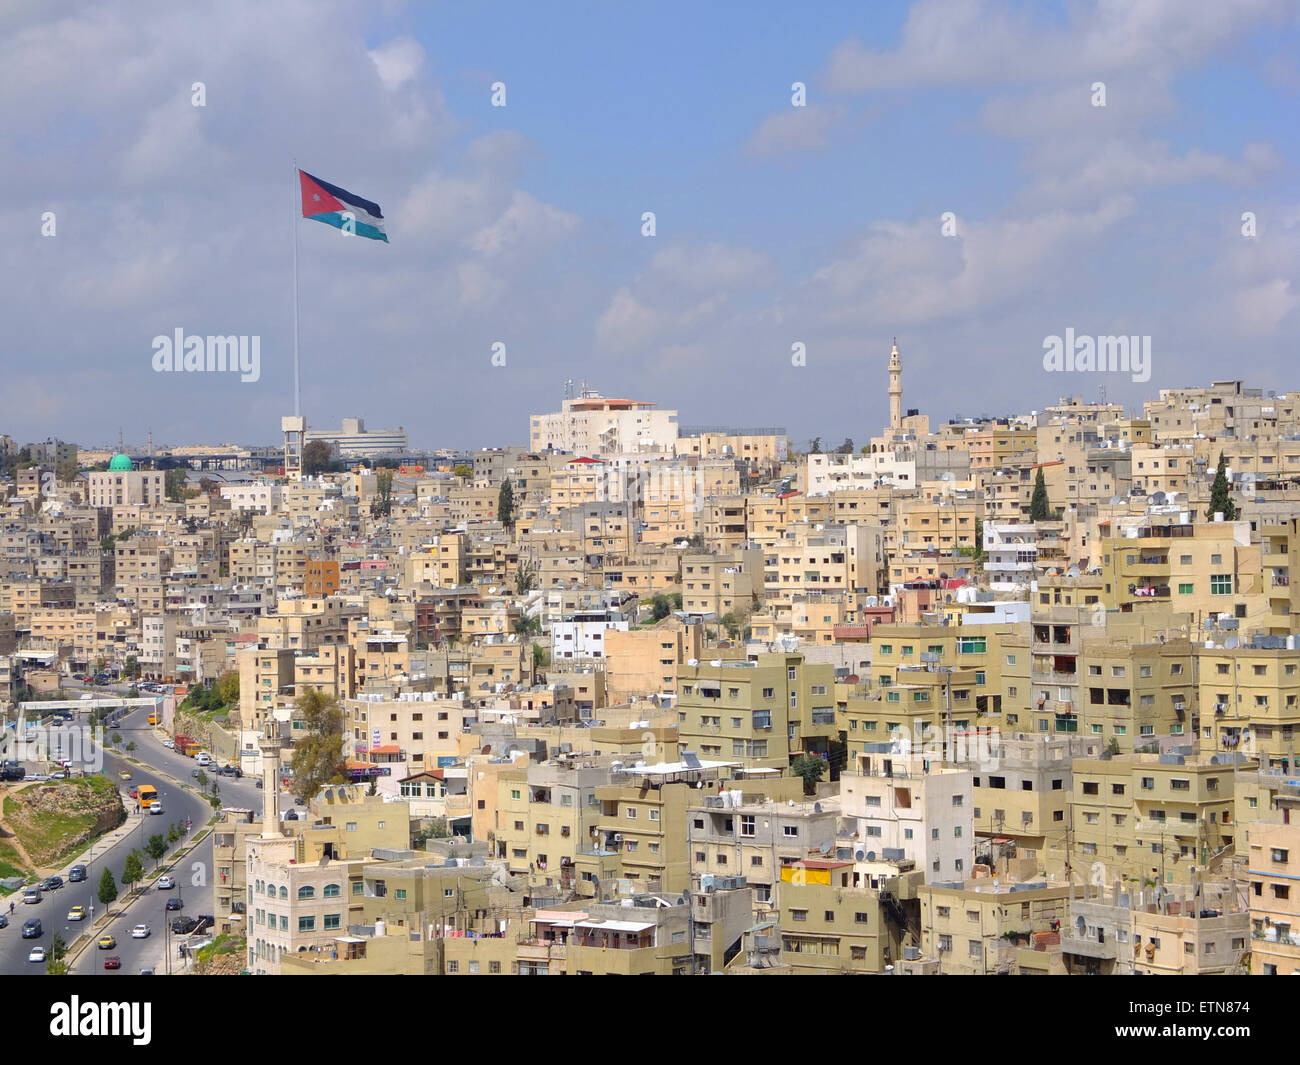 Amman, Jordanie skyline et drapeau Photo Stock